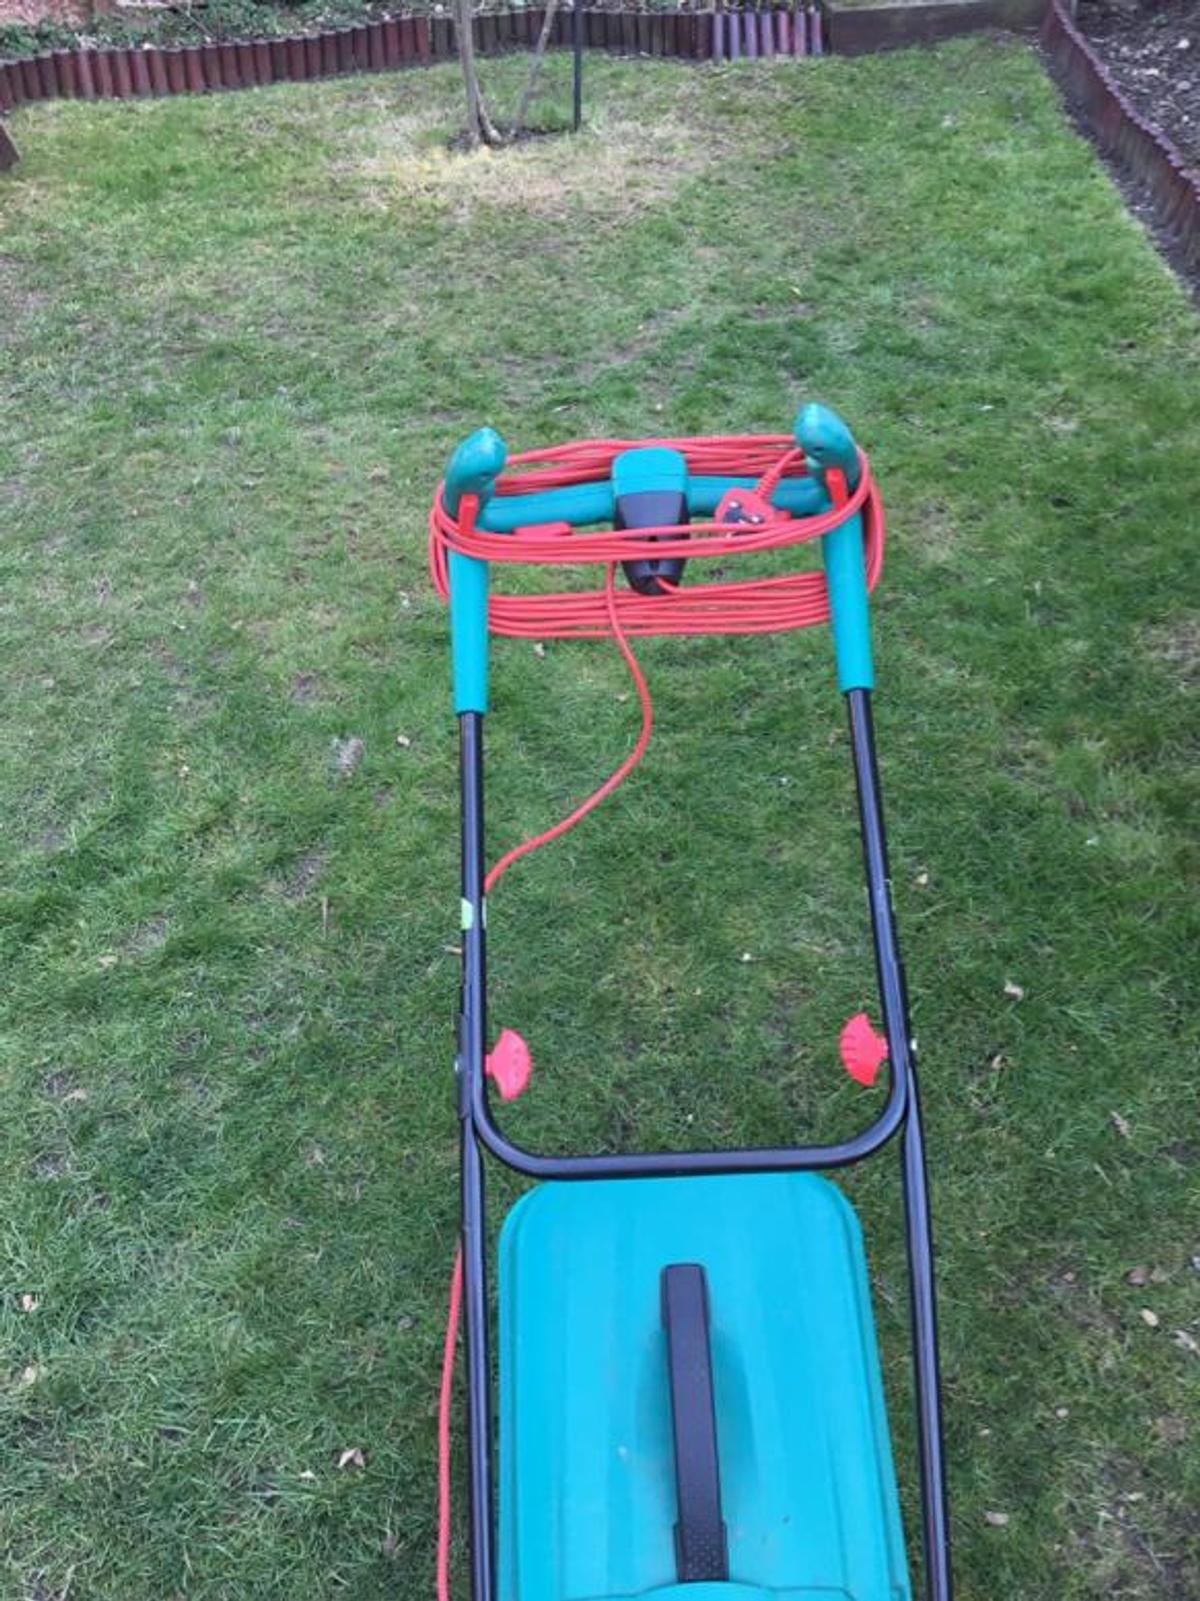 Bosch electric mower in good working order. Easy to adjust height, light, perfect for medium size garden. Cable has been taped in one point as been catch by the handle when folded. Hasn't been snapped, but taped for extra safe. Blade sharpened. Back roller for perfect stripes.